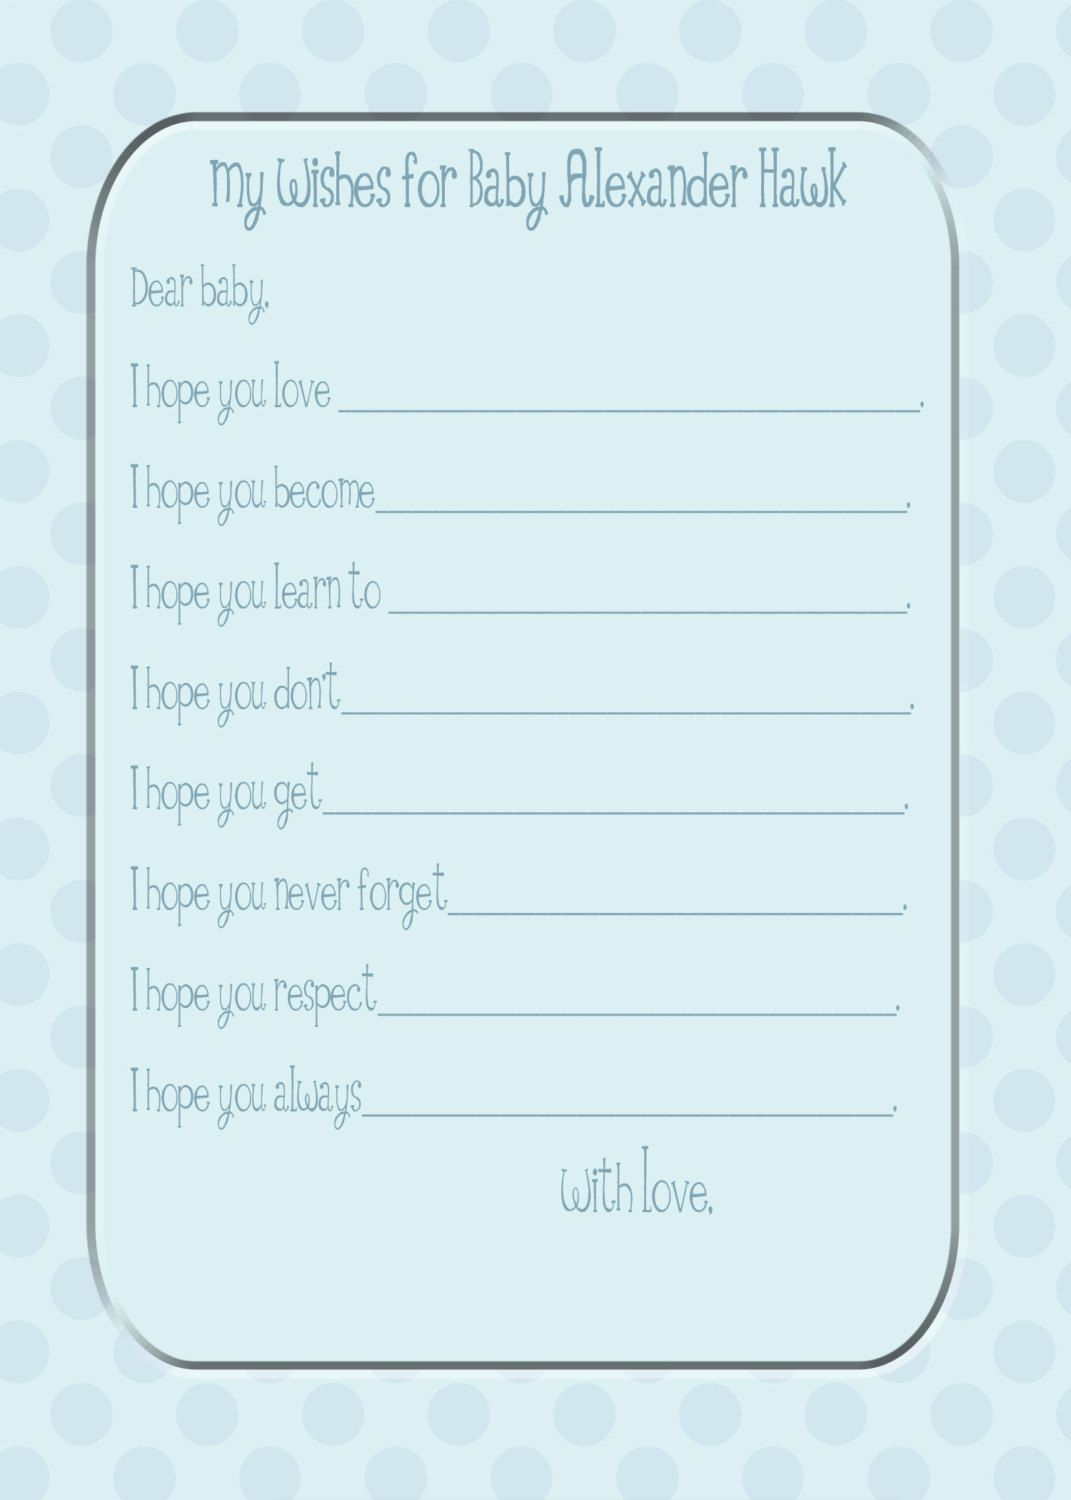 Wishes for baby shower template shower ideas for Wishes for baby template printable